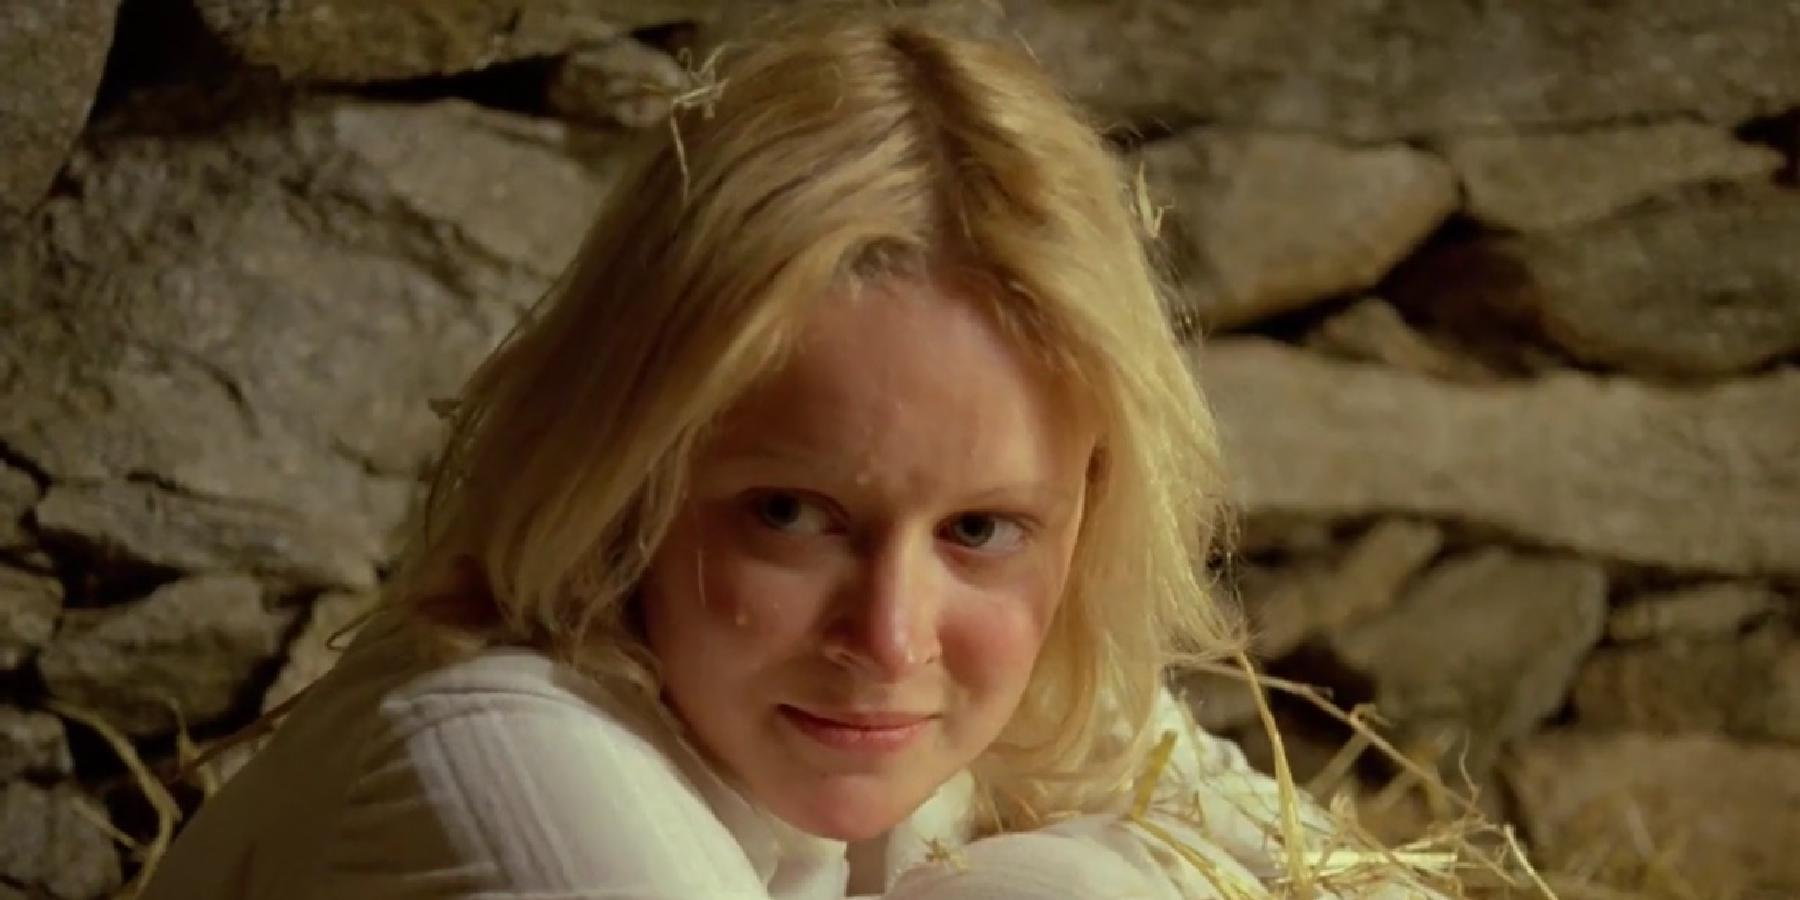 Lead actress Jane Lyle in a still from the movie Island of Death. She is hugging her knees to her shoulders, looking slightly off camera with an expression of schadenfreude.